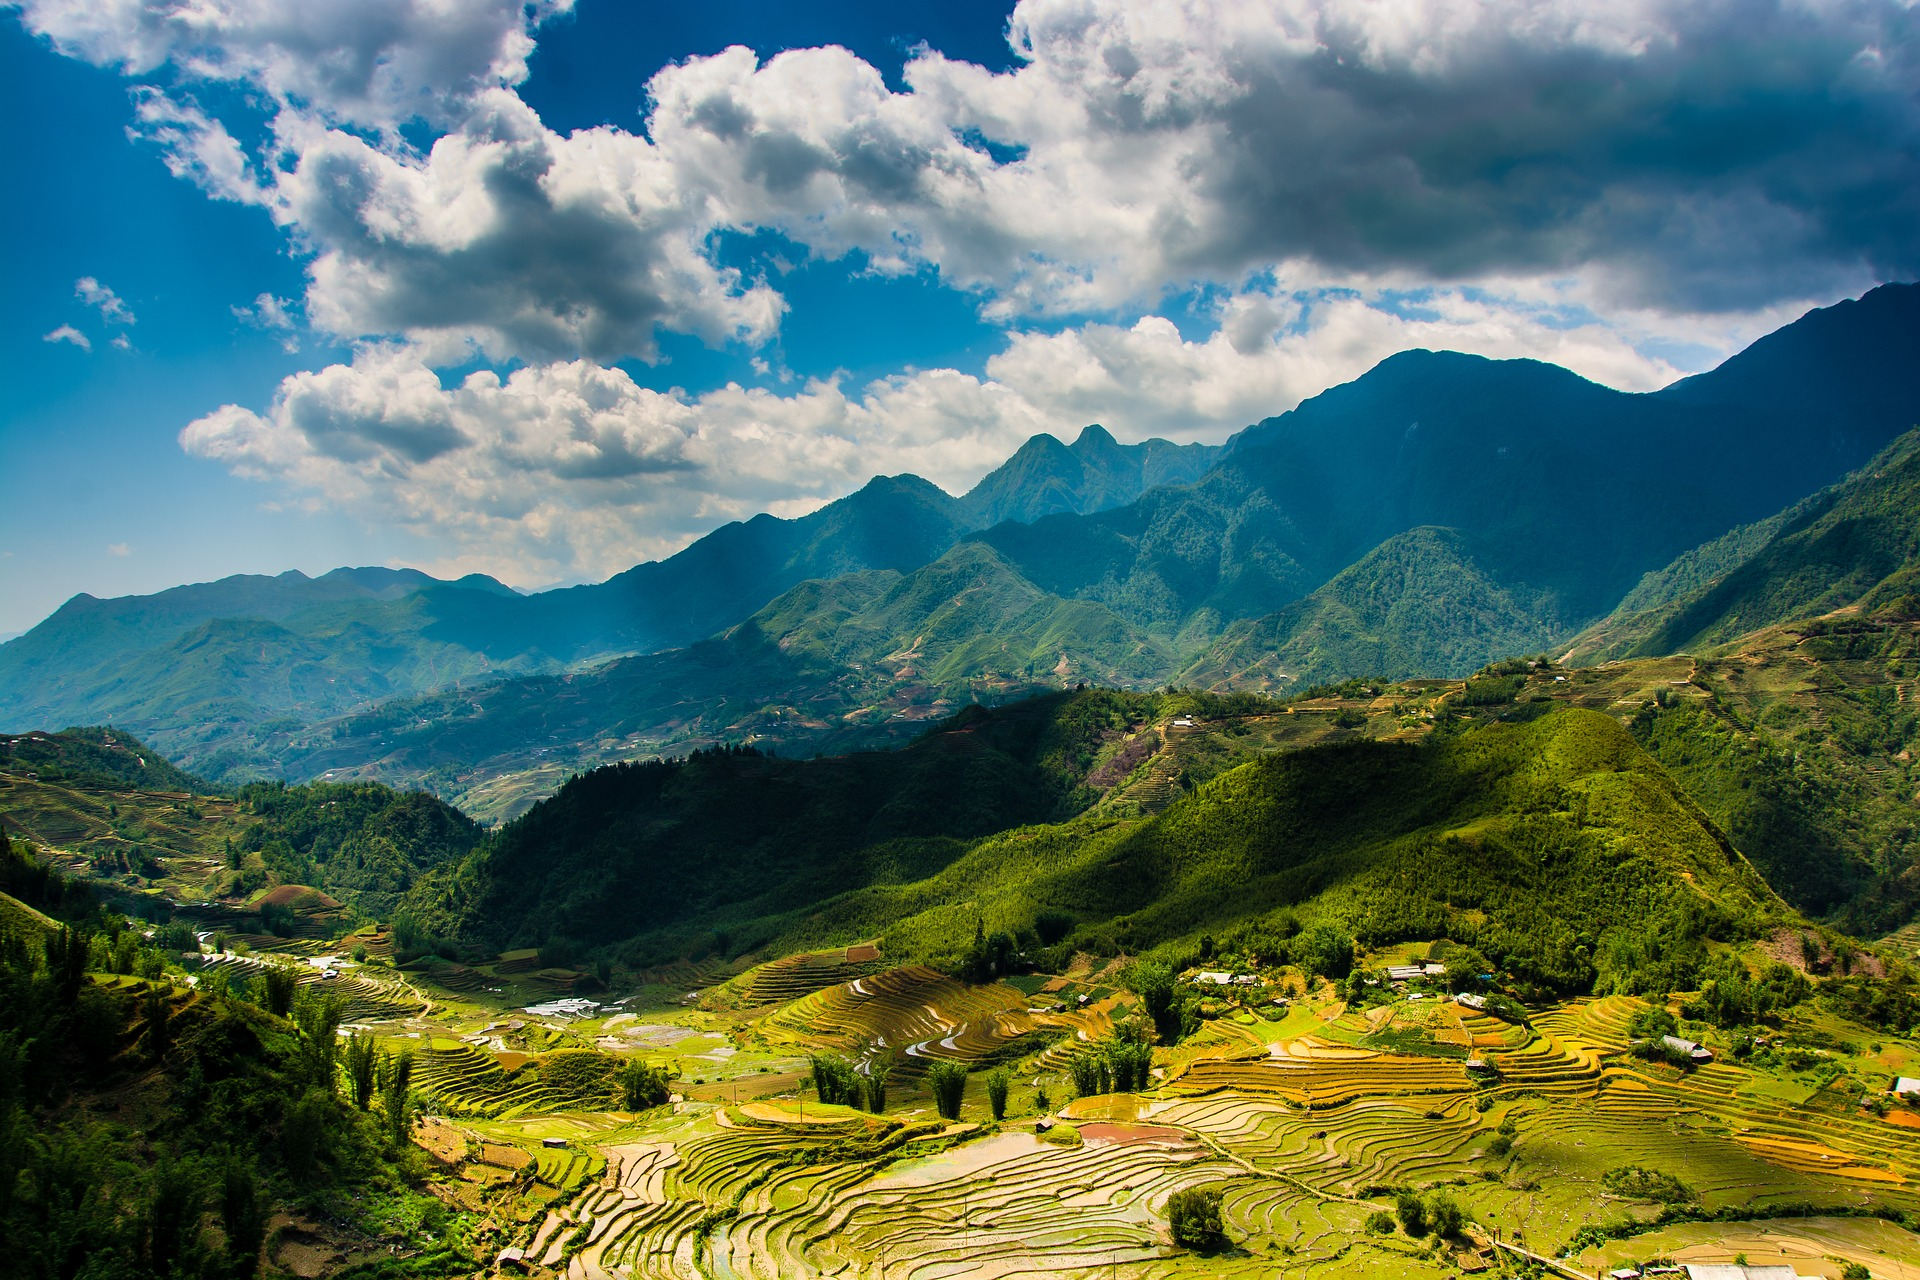 Sapa Countryside - Top Place in Vietnam That Every Tourist Must Visit